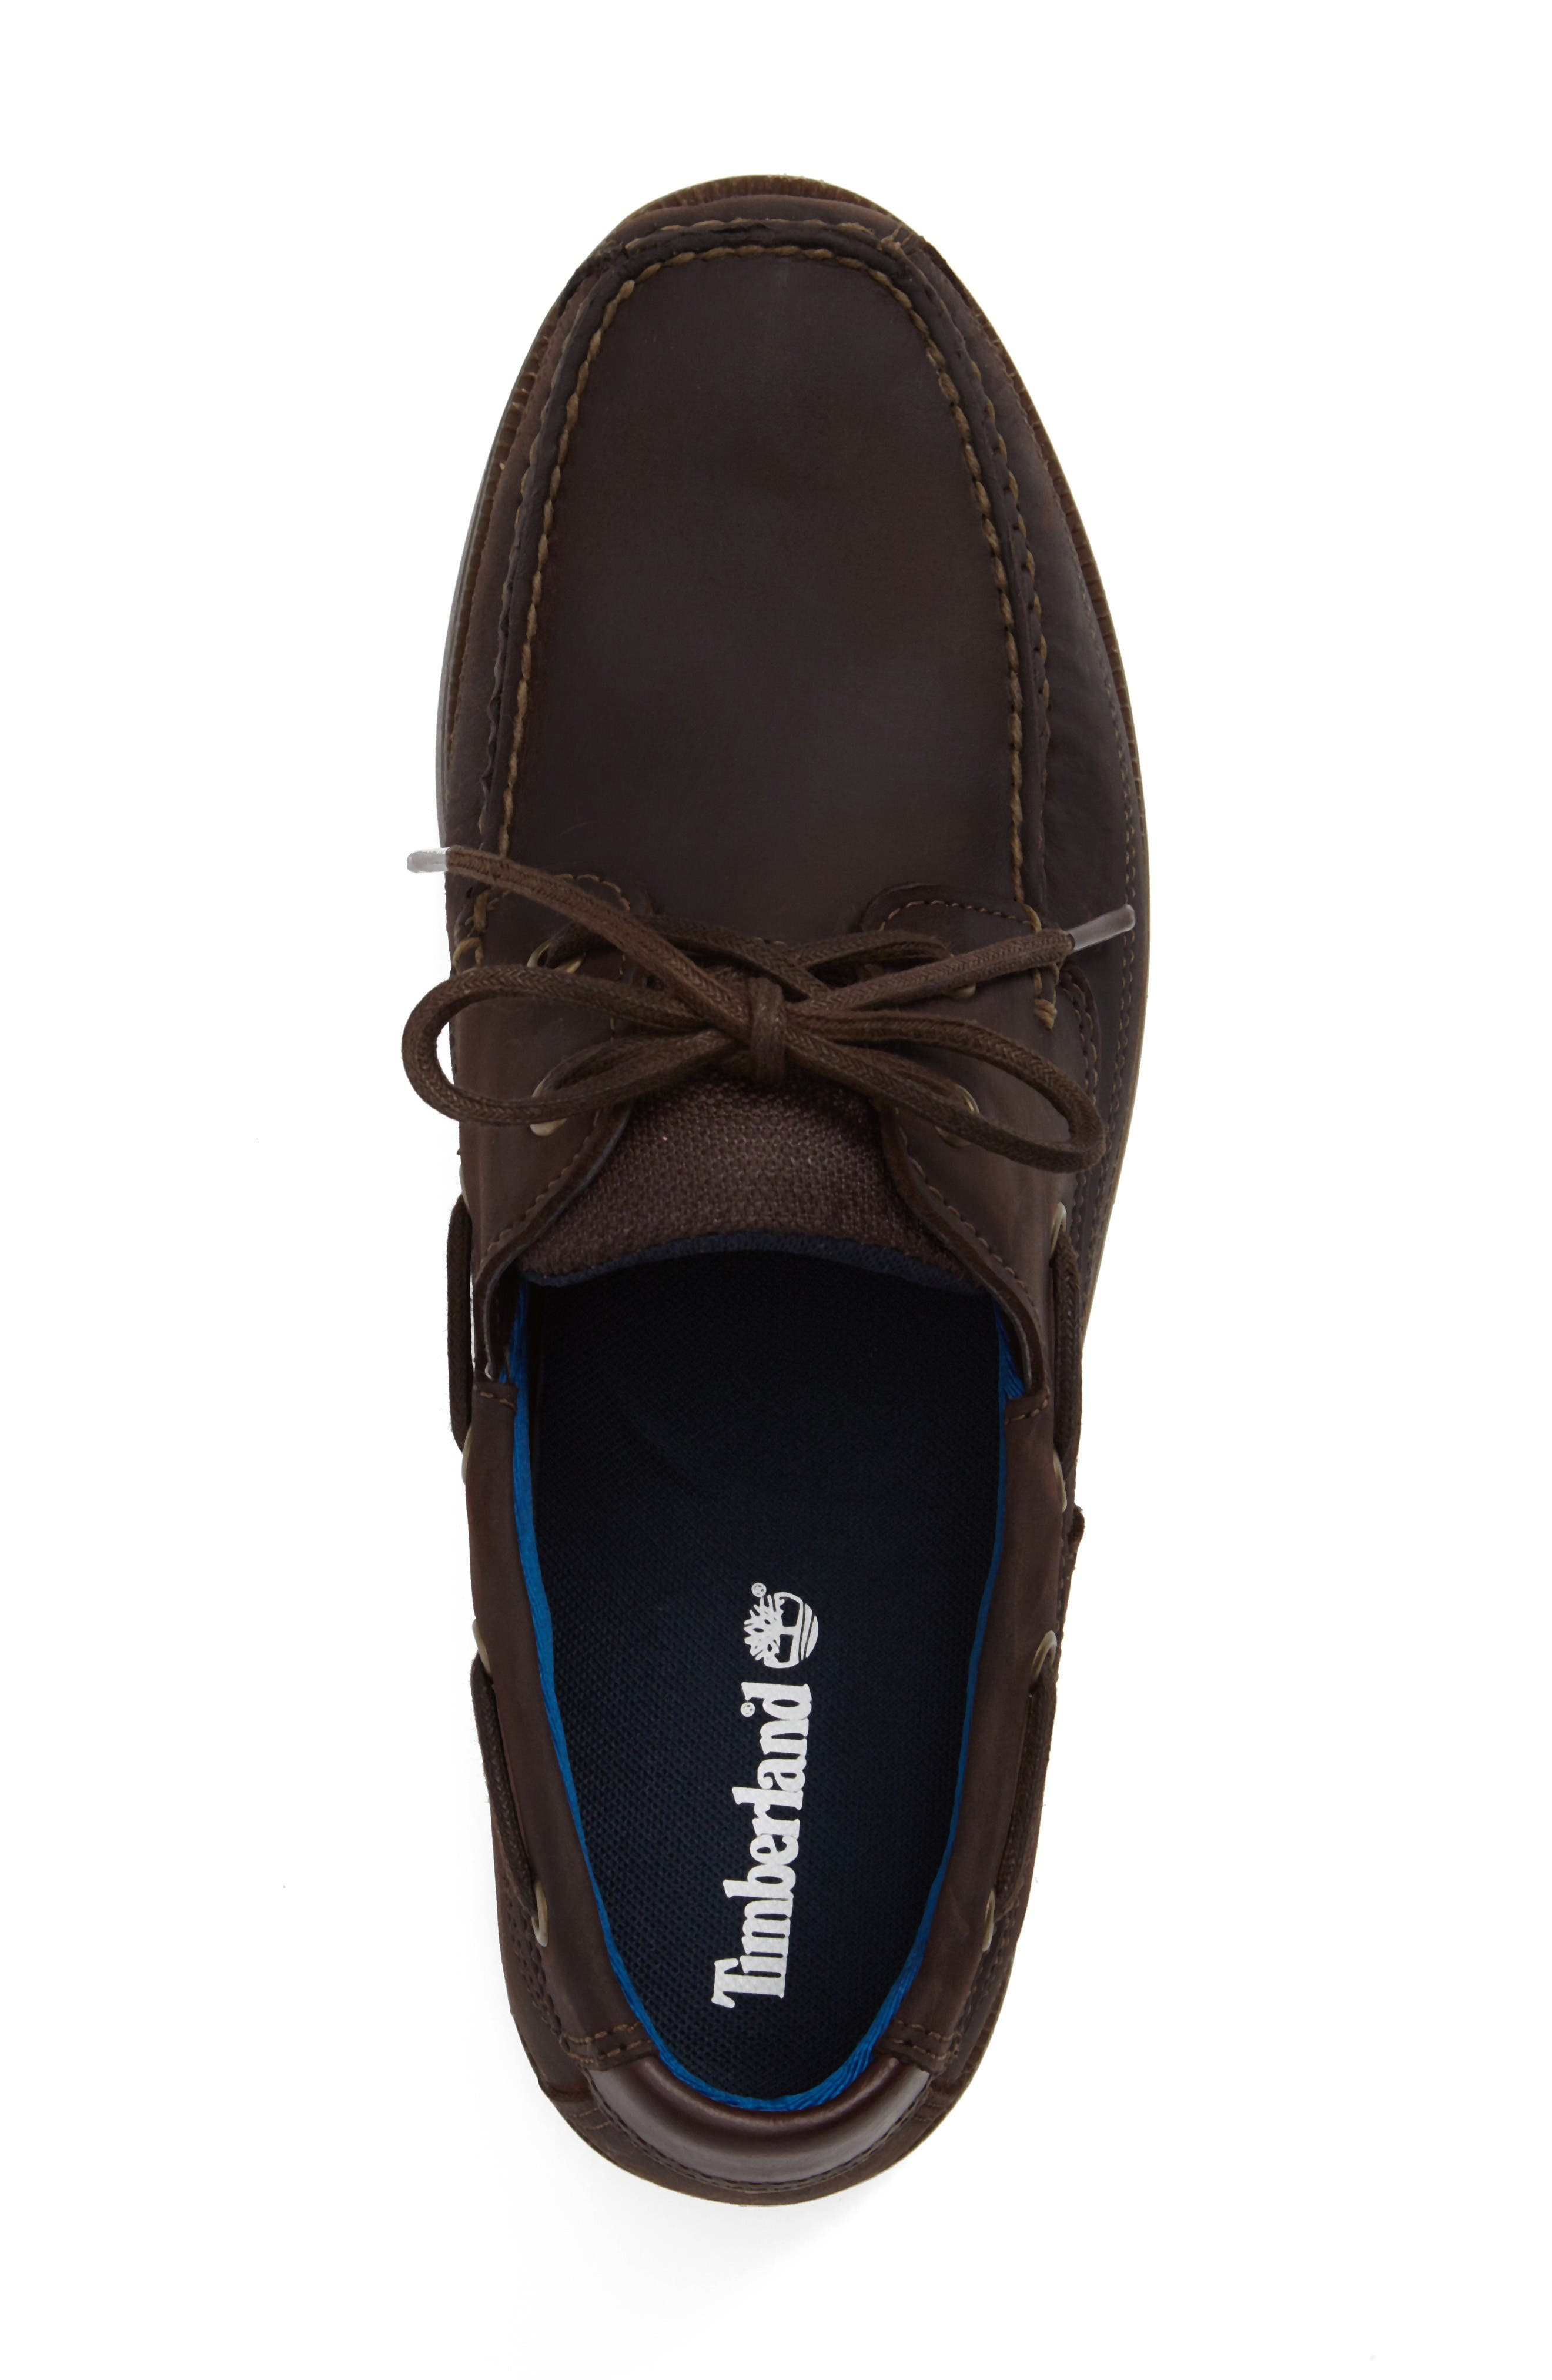 Alternate Image 3  - Timberland Piper Cove FG Boat Shoe (Men)